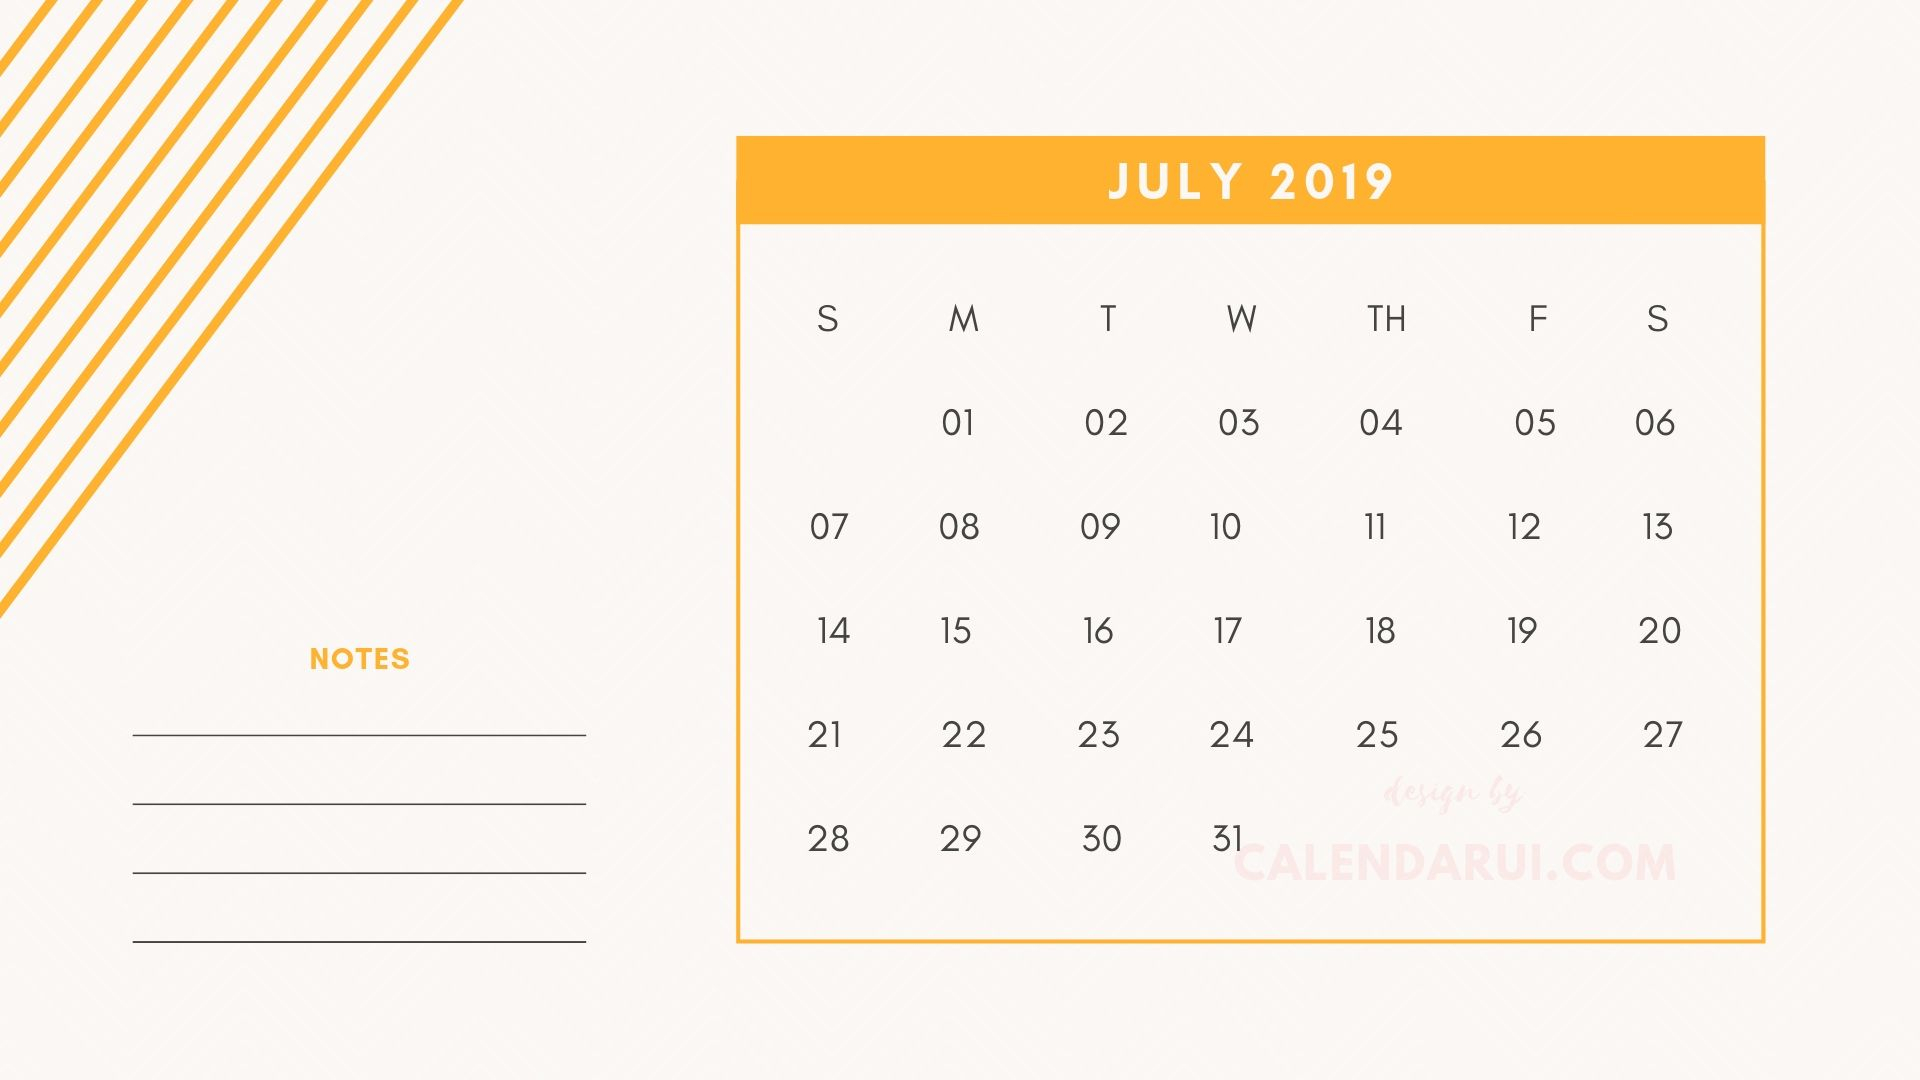 7 July Printable Mini Calendar 2019 Template With Notes Calendarui pertaining to Mini Blank June And July Calendar